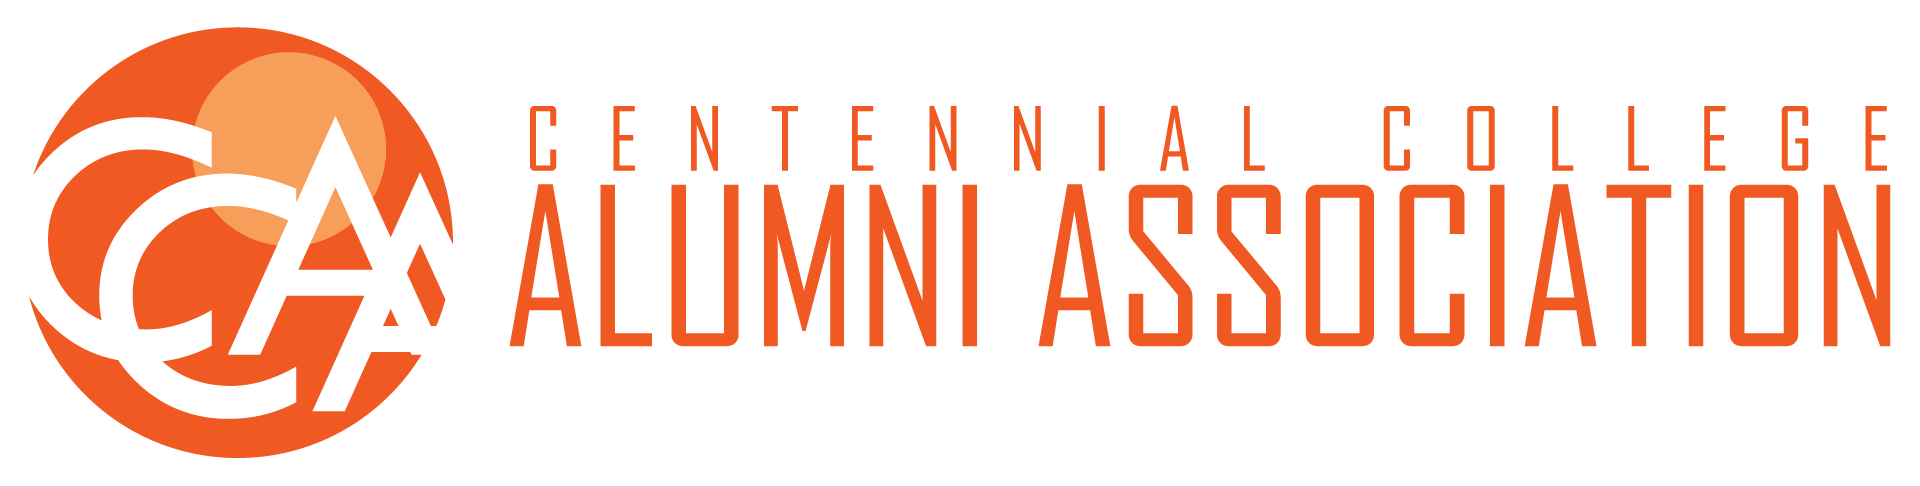 Centennial College Alumni Association